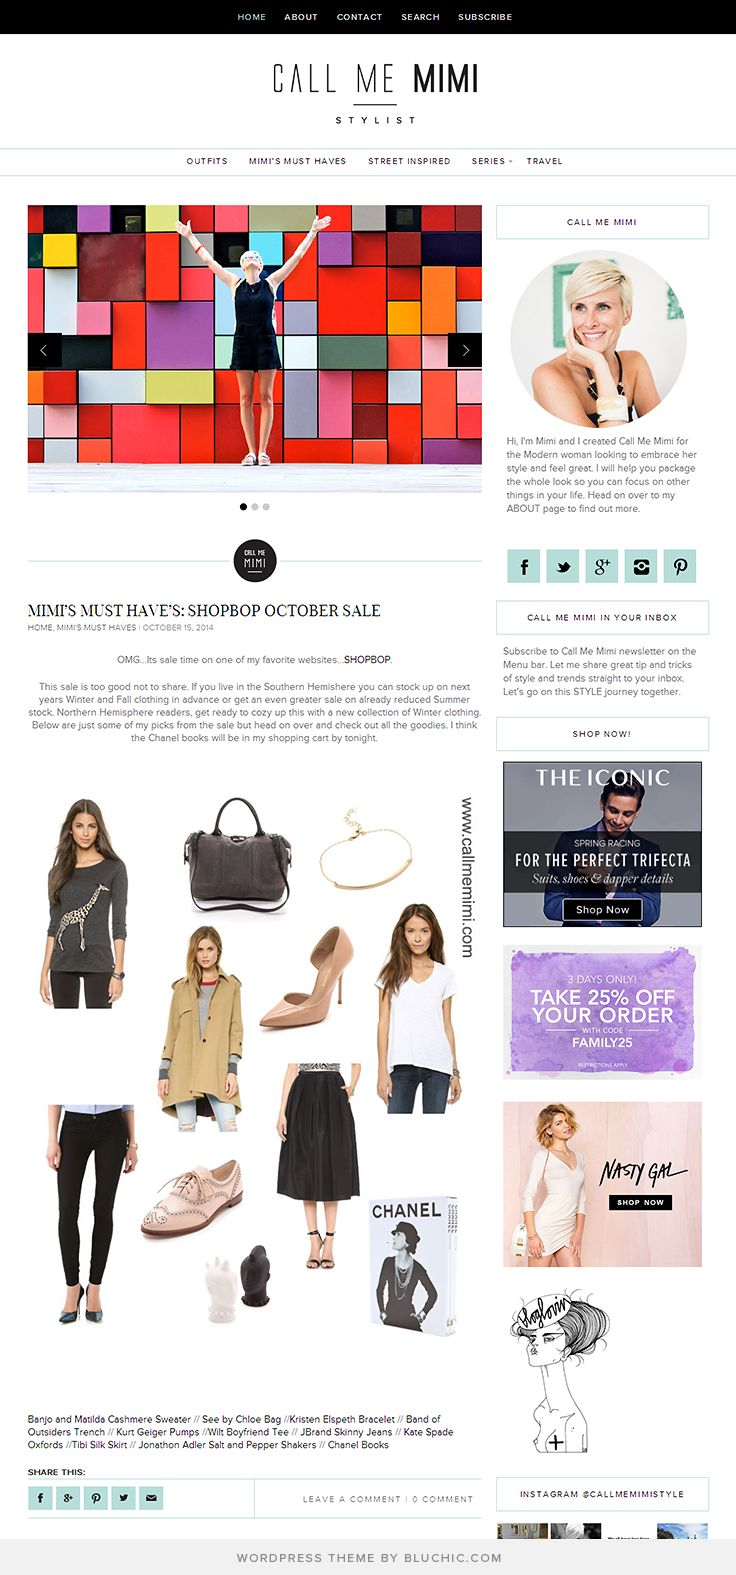 Gorgeous blog design for a fashion & lifestyle blog. Using Lynette WordPress Theme from Bluchic http://www.bluchic.com/shop/wordpress-themes/lynette-theme